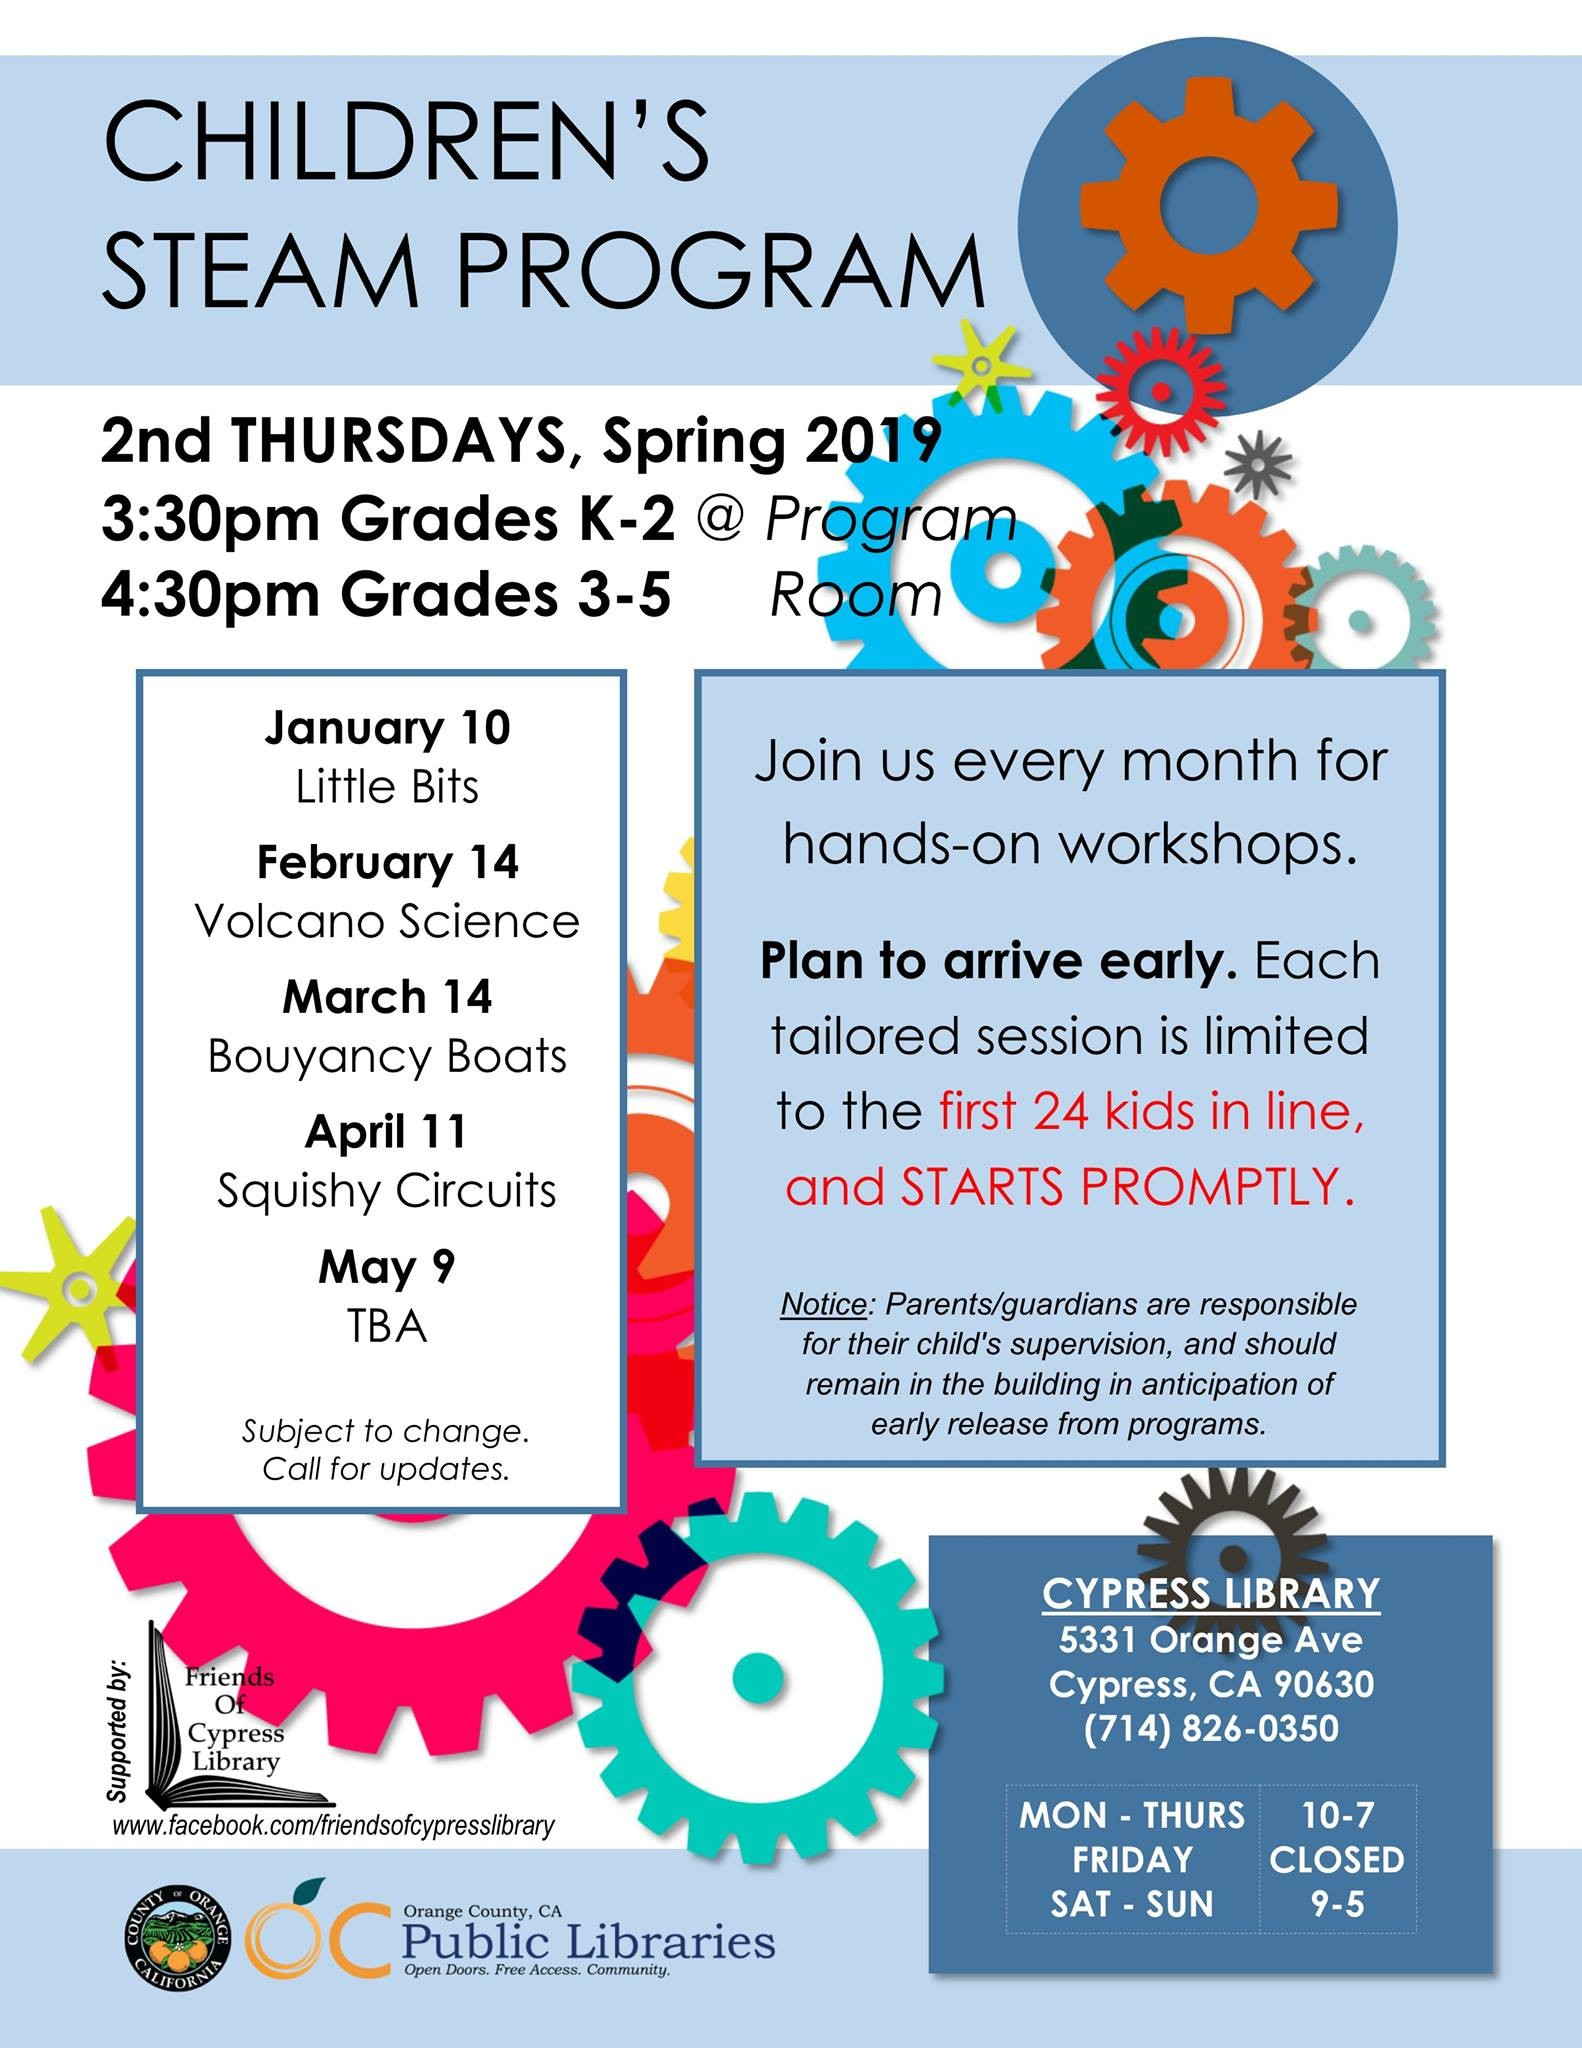 March Calendar Kids Más Recientes Steam Grades K 2 Cypress Library Los Angeles [11 April] Of March Calendar Kids Más Recientes Free Printable toddler Weekly Calendar Projectsinparenting